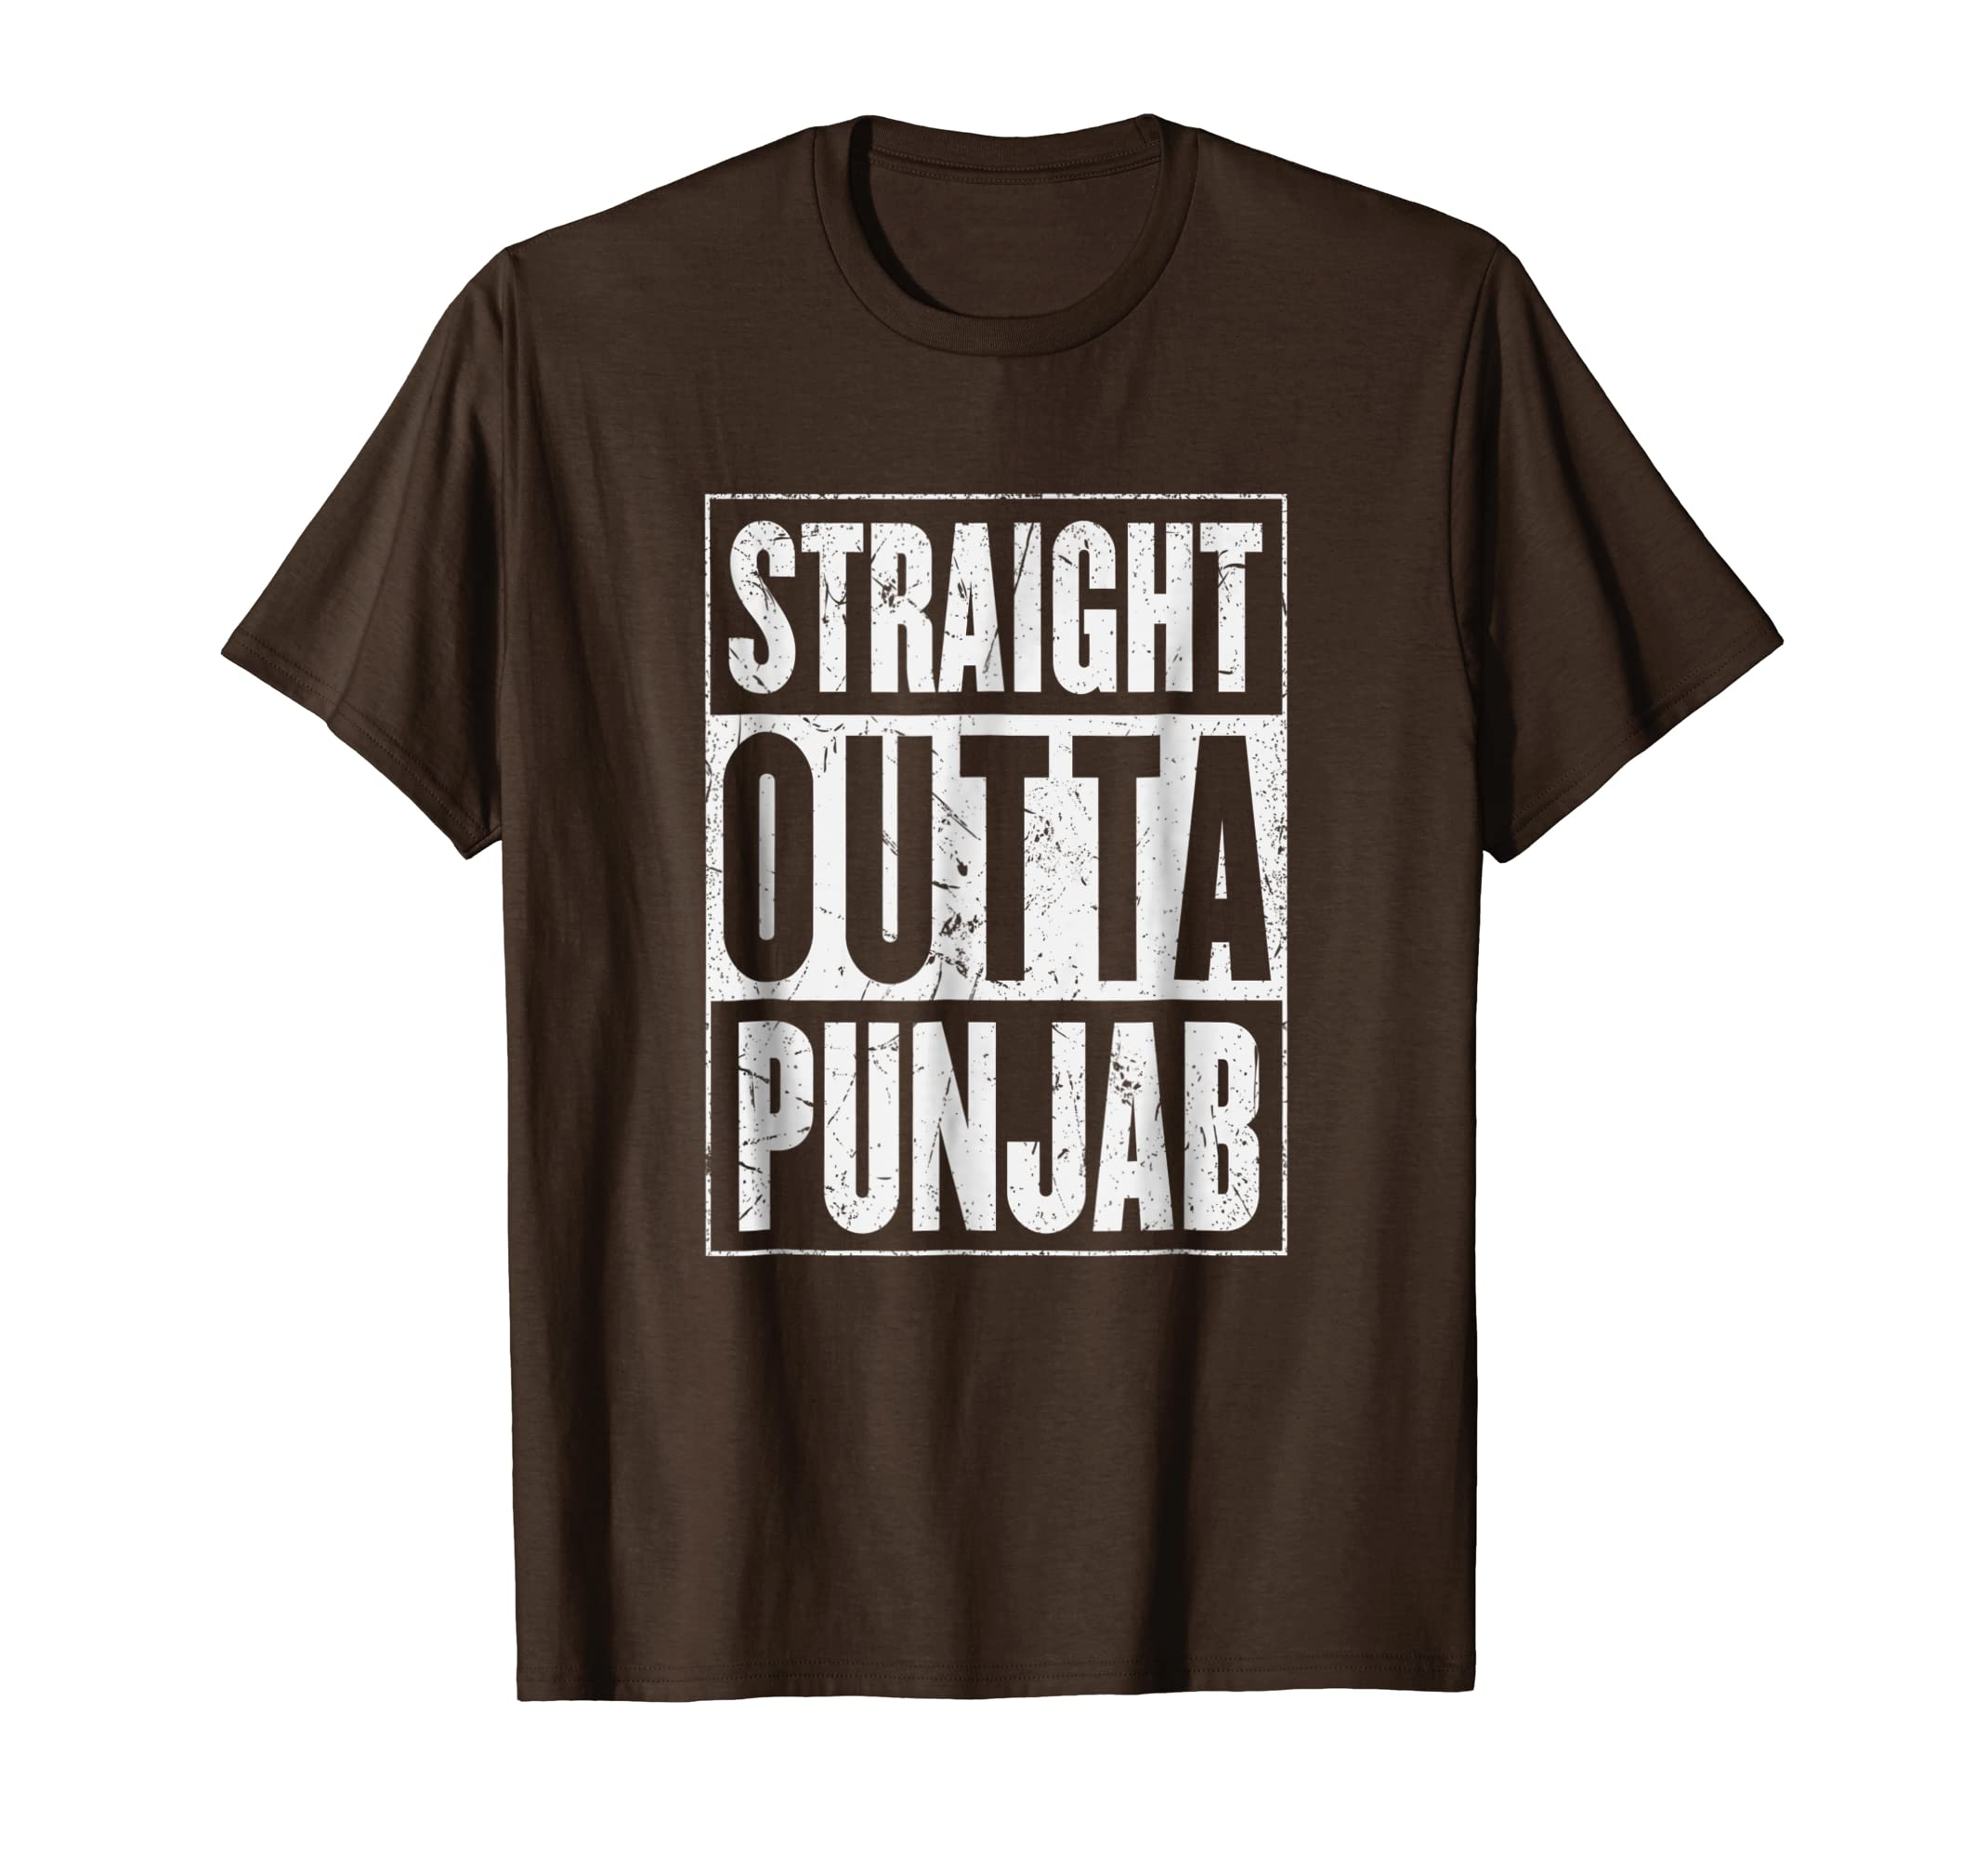 603a9ab01 Punjabi T Shirts Online Usa - Aztec Stone and Reclamations